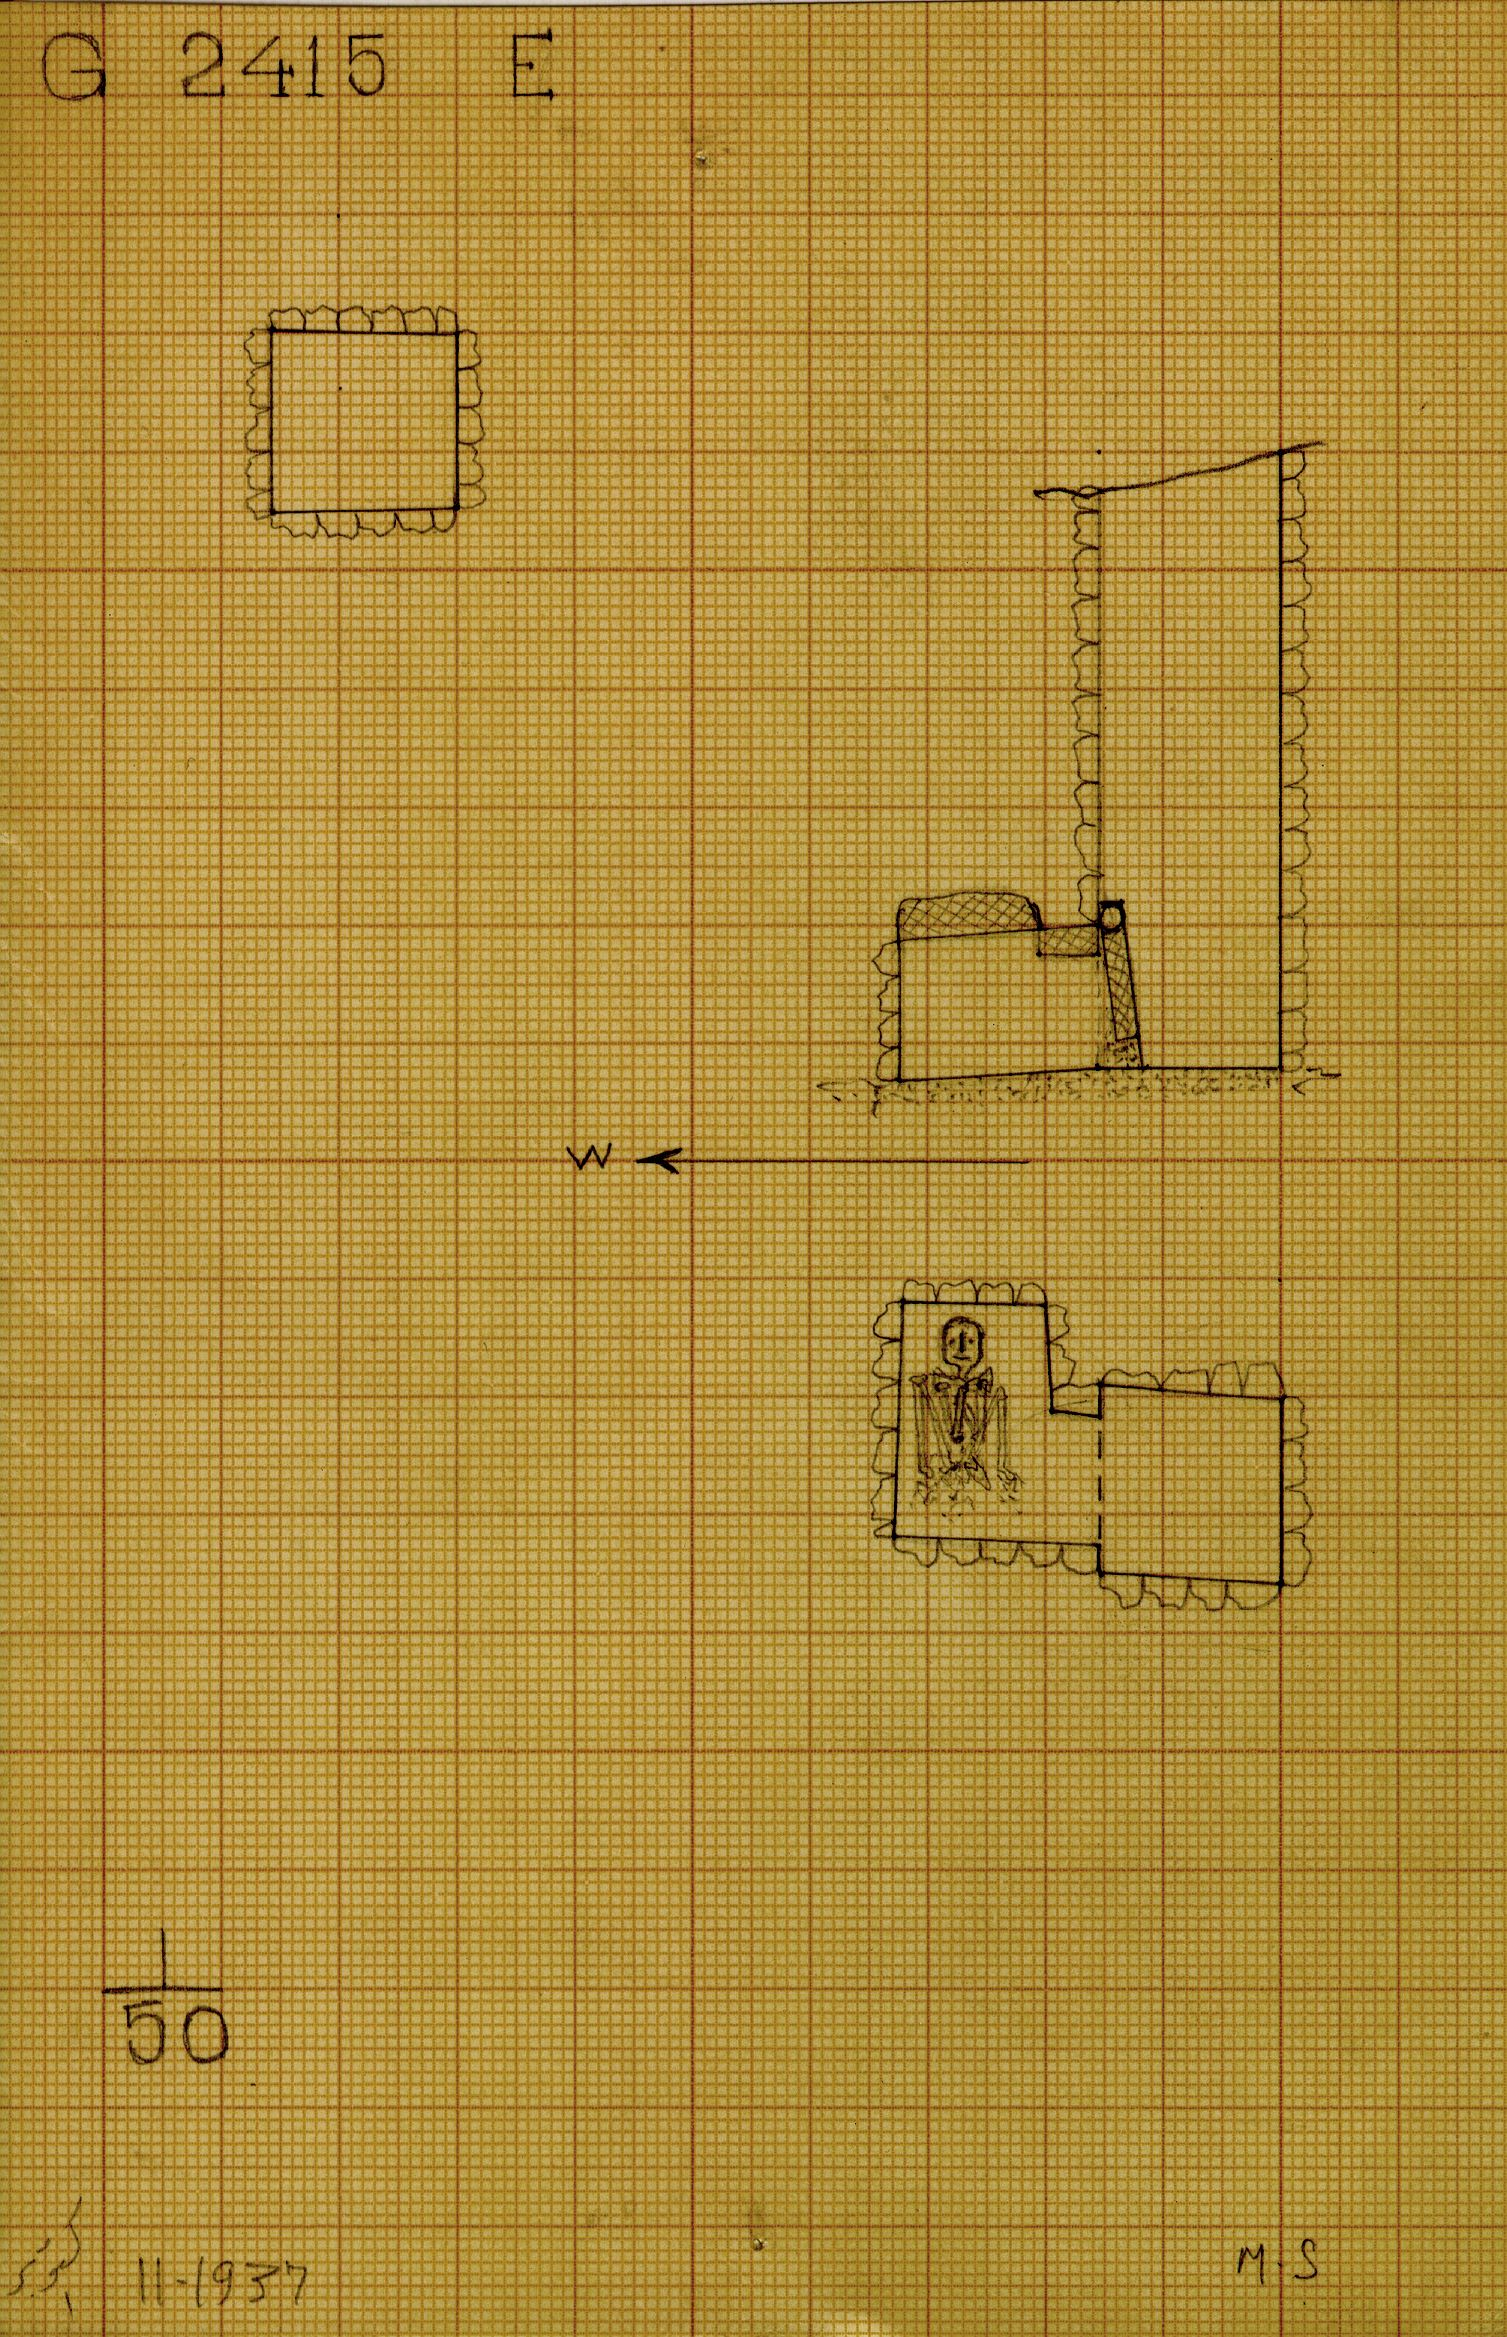 Maps and plans: G 2415, Shaft E